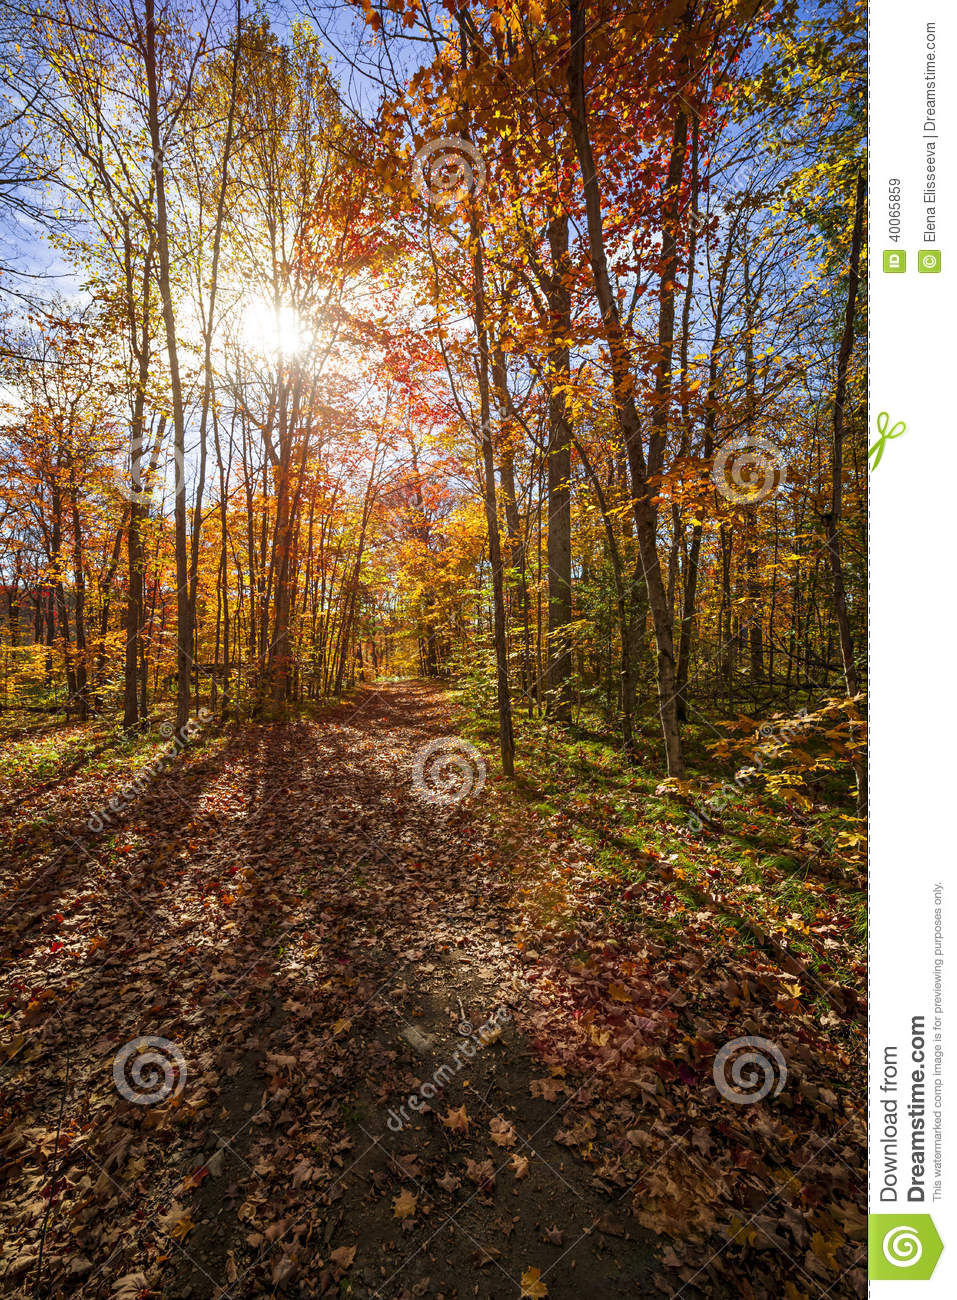 West Virginia Railroad Bridge additionally Sunshine Fall Forest Sun Shining Colorful Leaves Autumn Trees Hiking Trail Algonquin Park Ontario Canada in addition Tree likewise Lanterns Tree Some Lit Against Moonlight Twilight Night Sky as well Qatar. on free vector trees